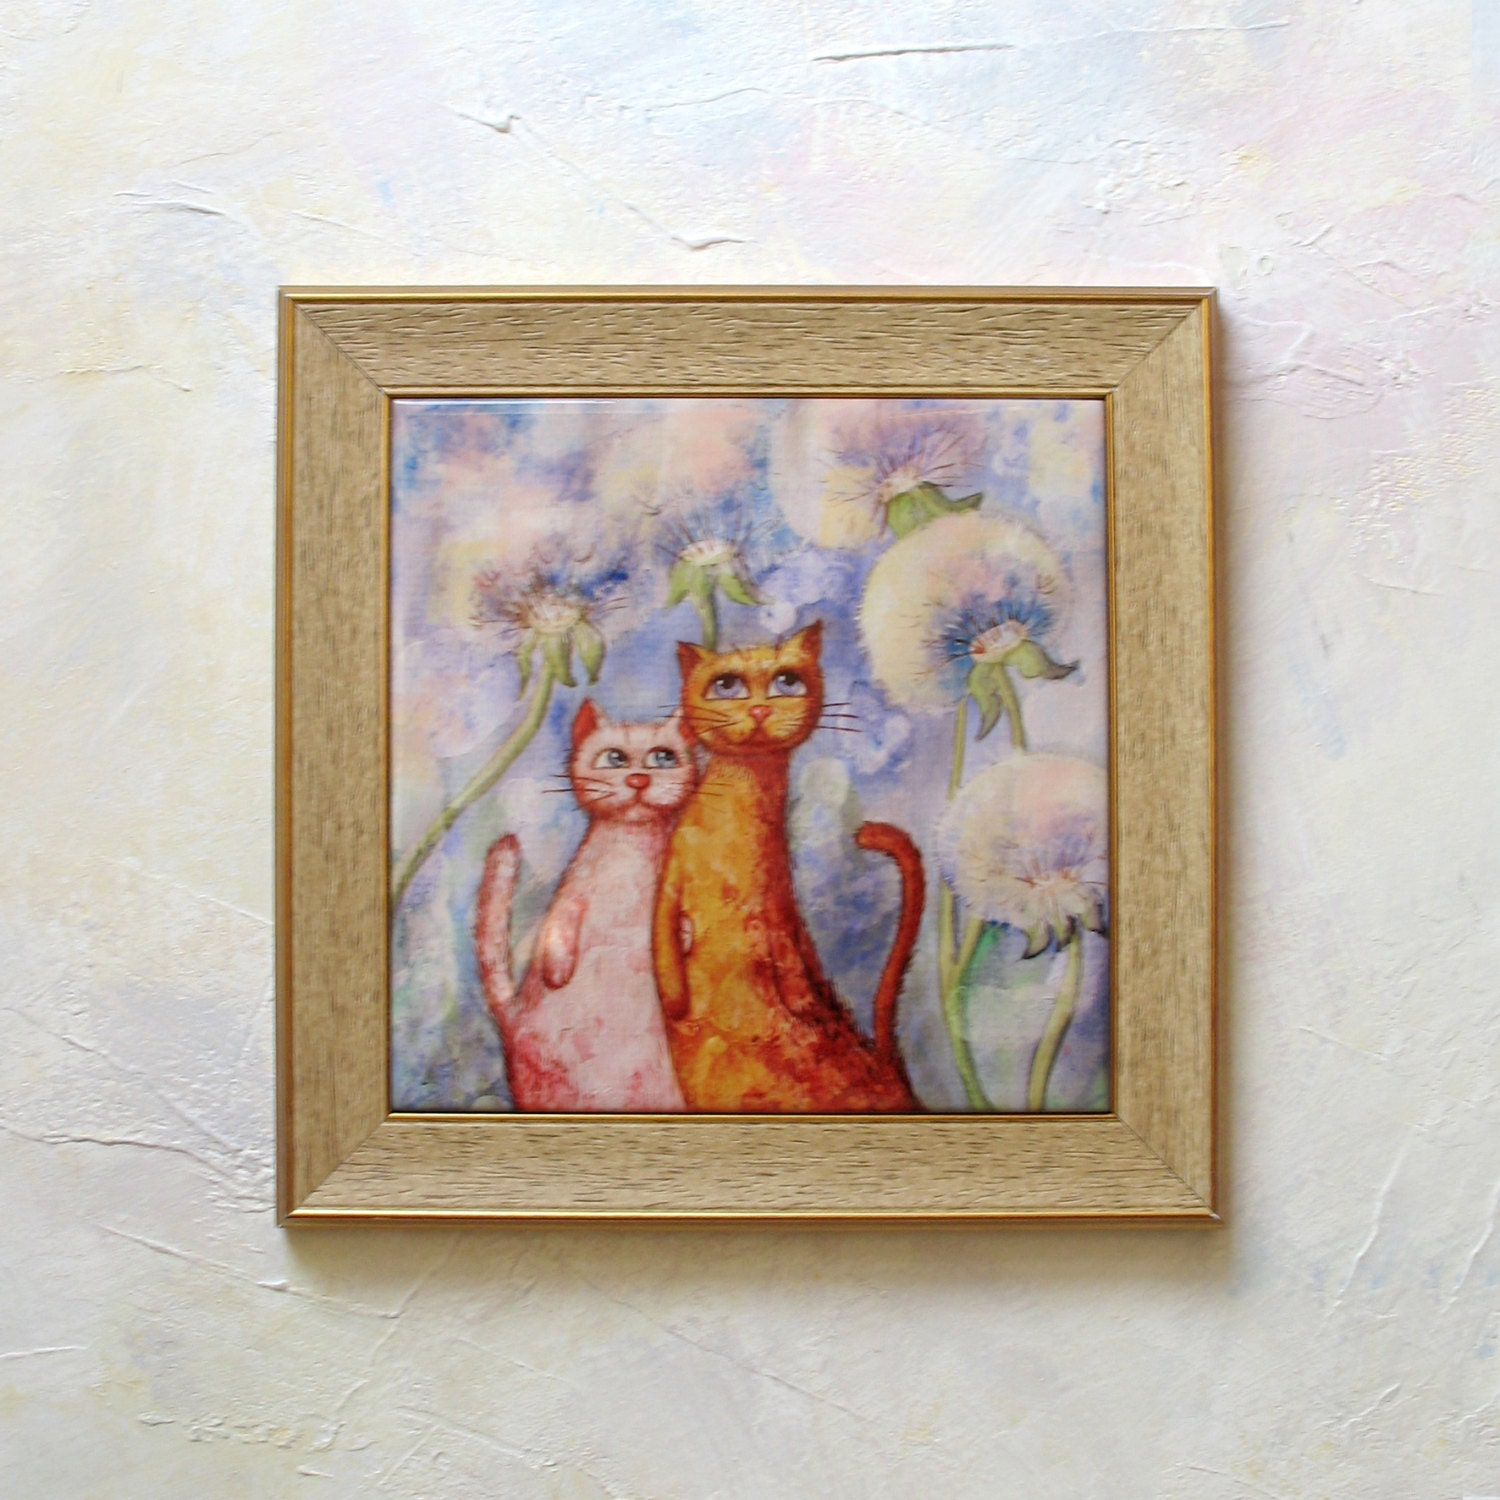 Painting cat hand painted ceramic tile wall art by sobolevaart - Hand painted ceramic tile ...